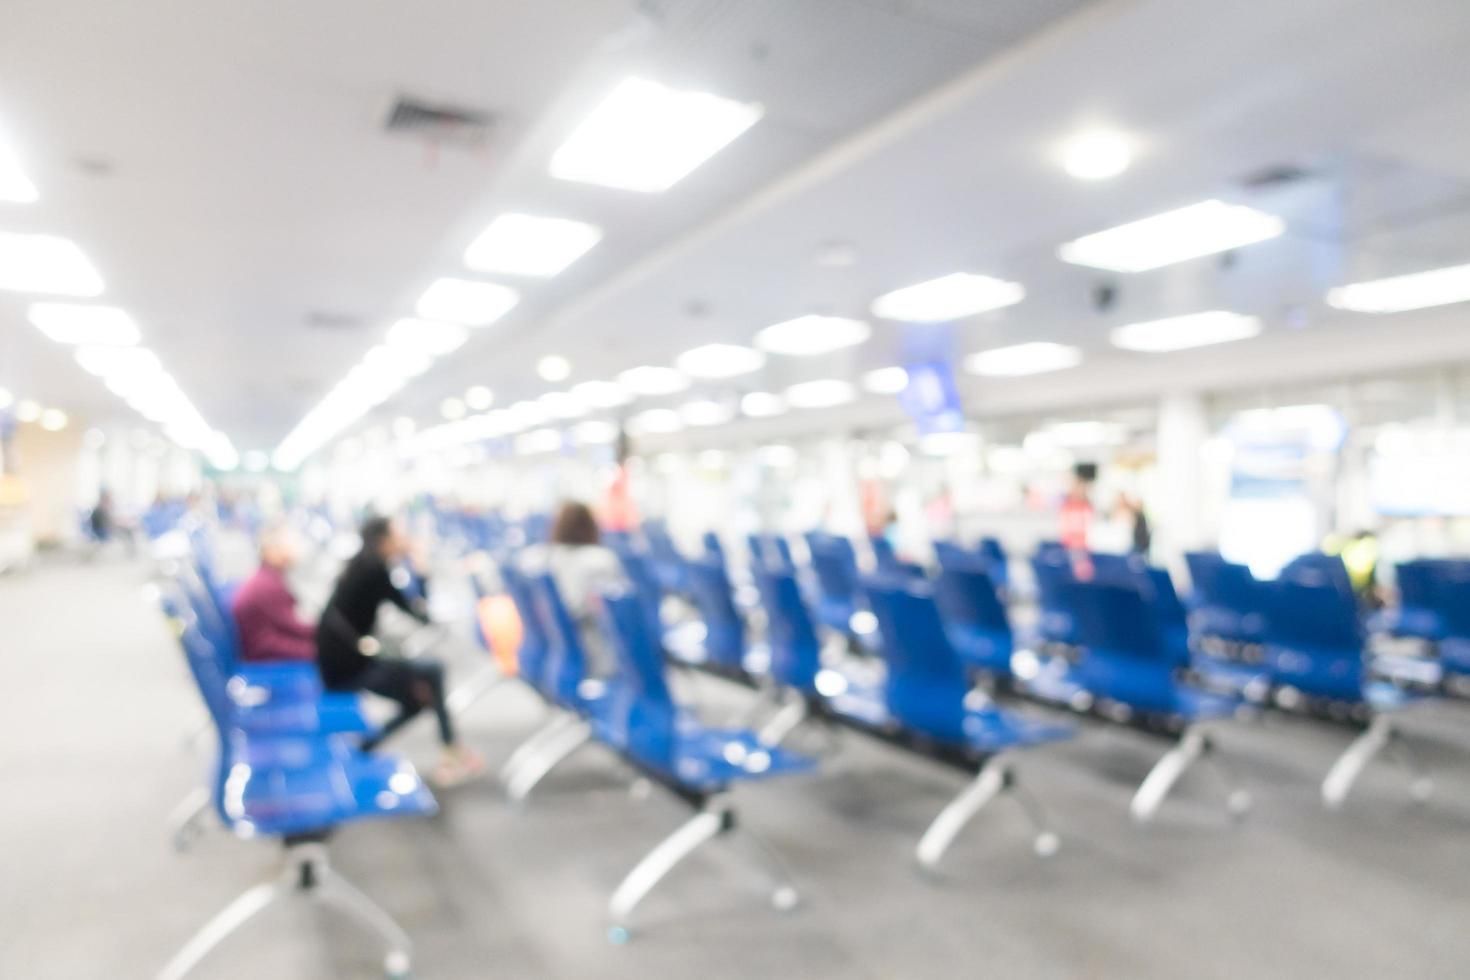 Abstract blurred airport background photo